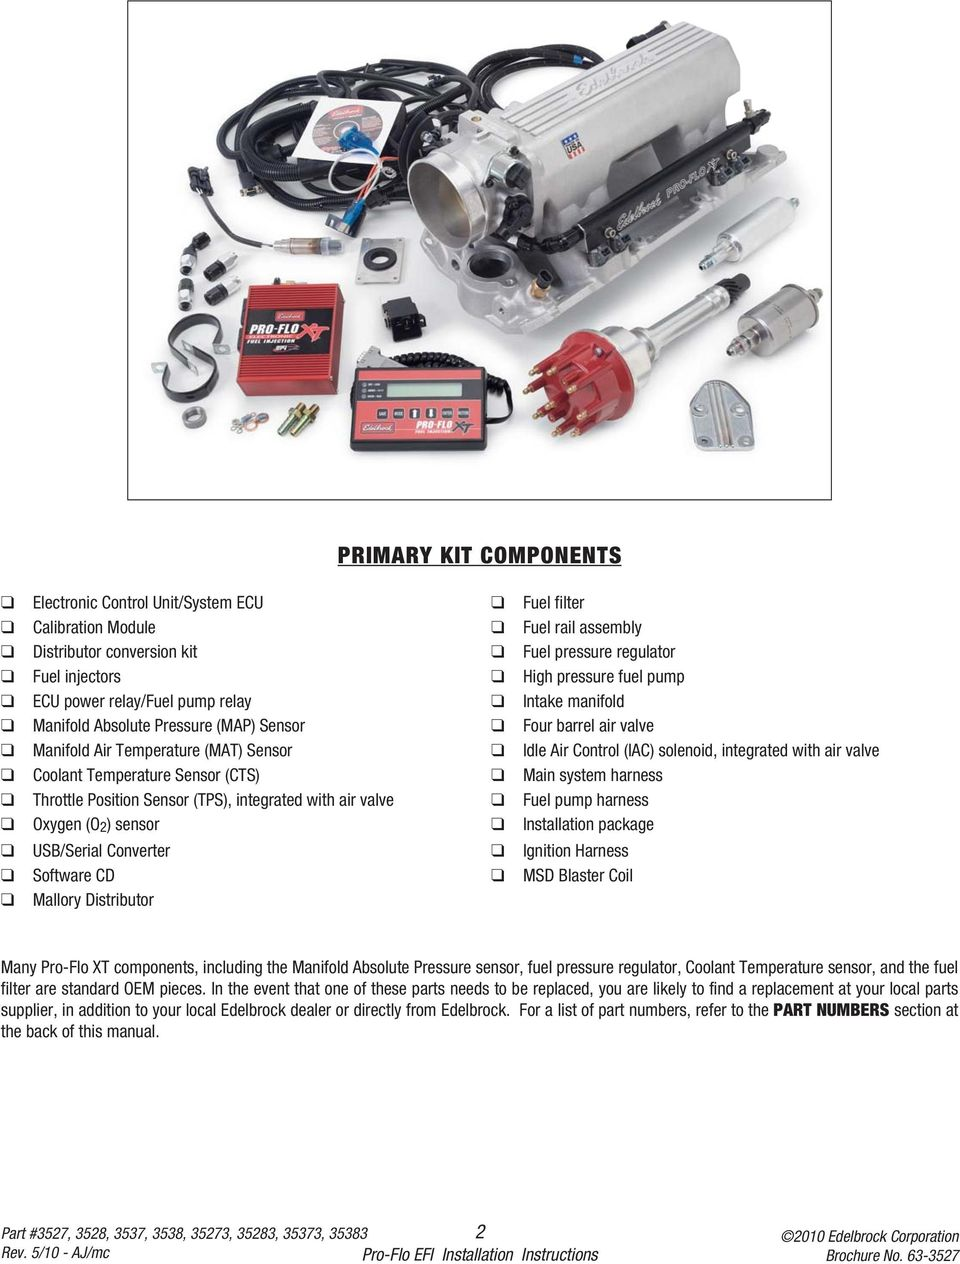 Installation Instructions Pdf Mallory Air Valve Coolant Temperature Sensor Cts Main System Harness Throttle Position Tps